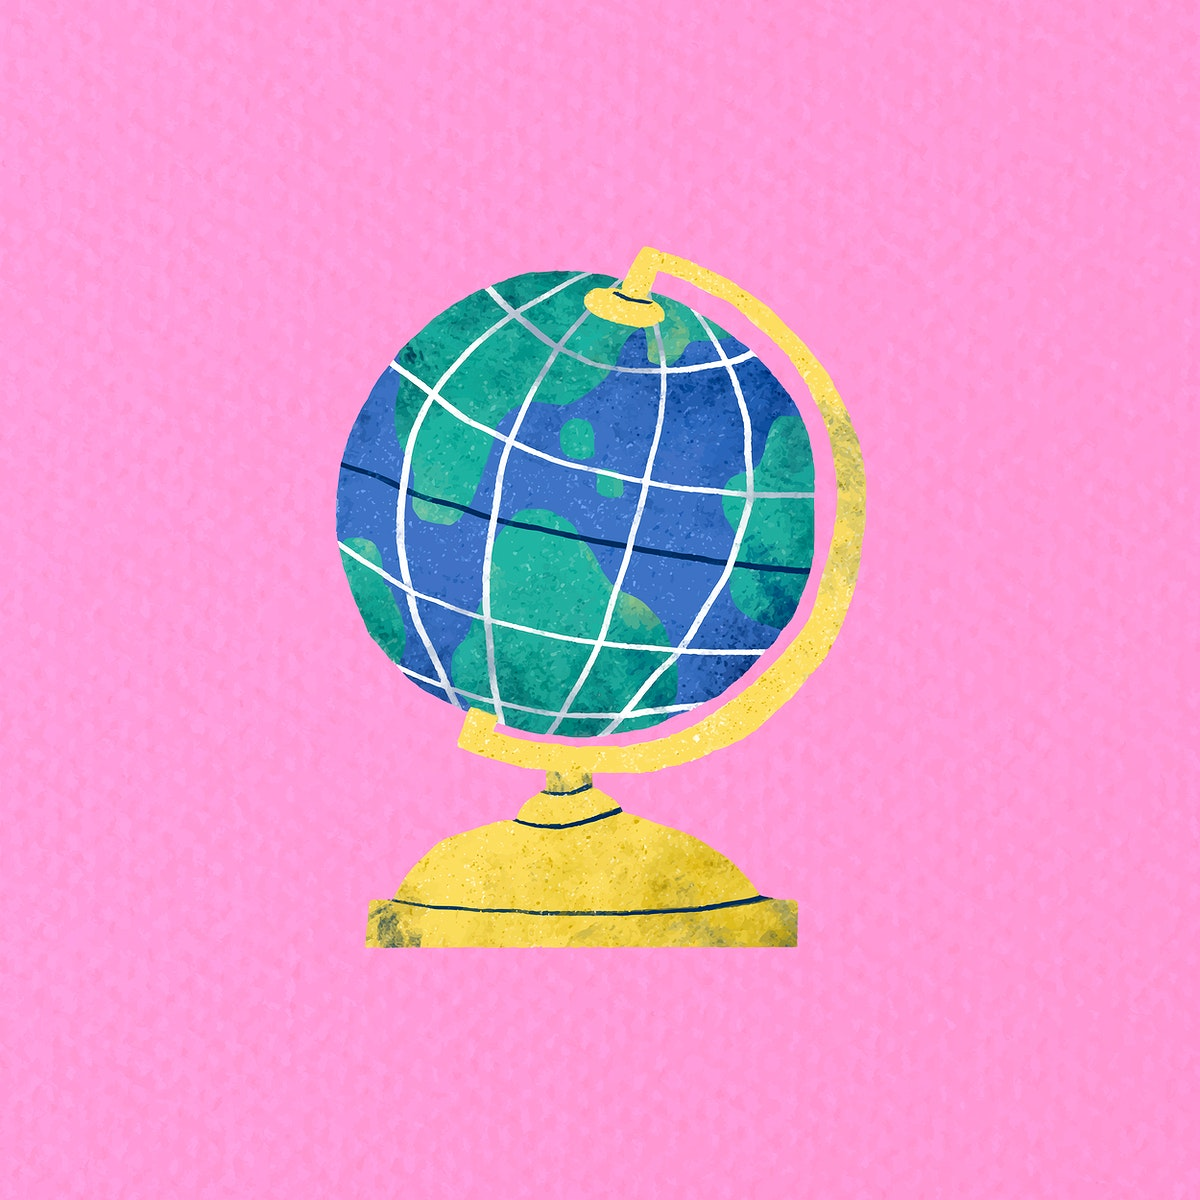 Globe doodle on a pink background vector